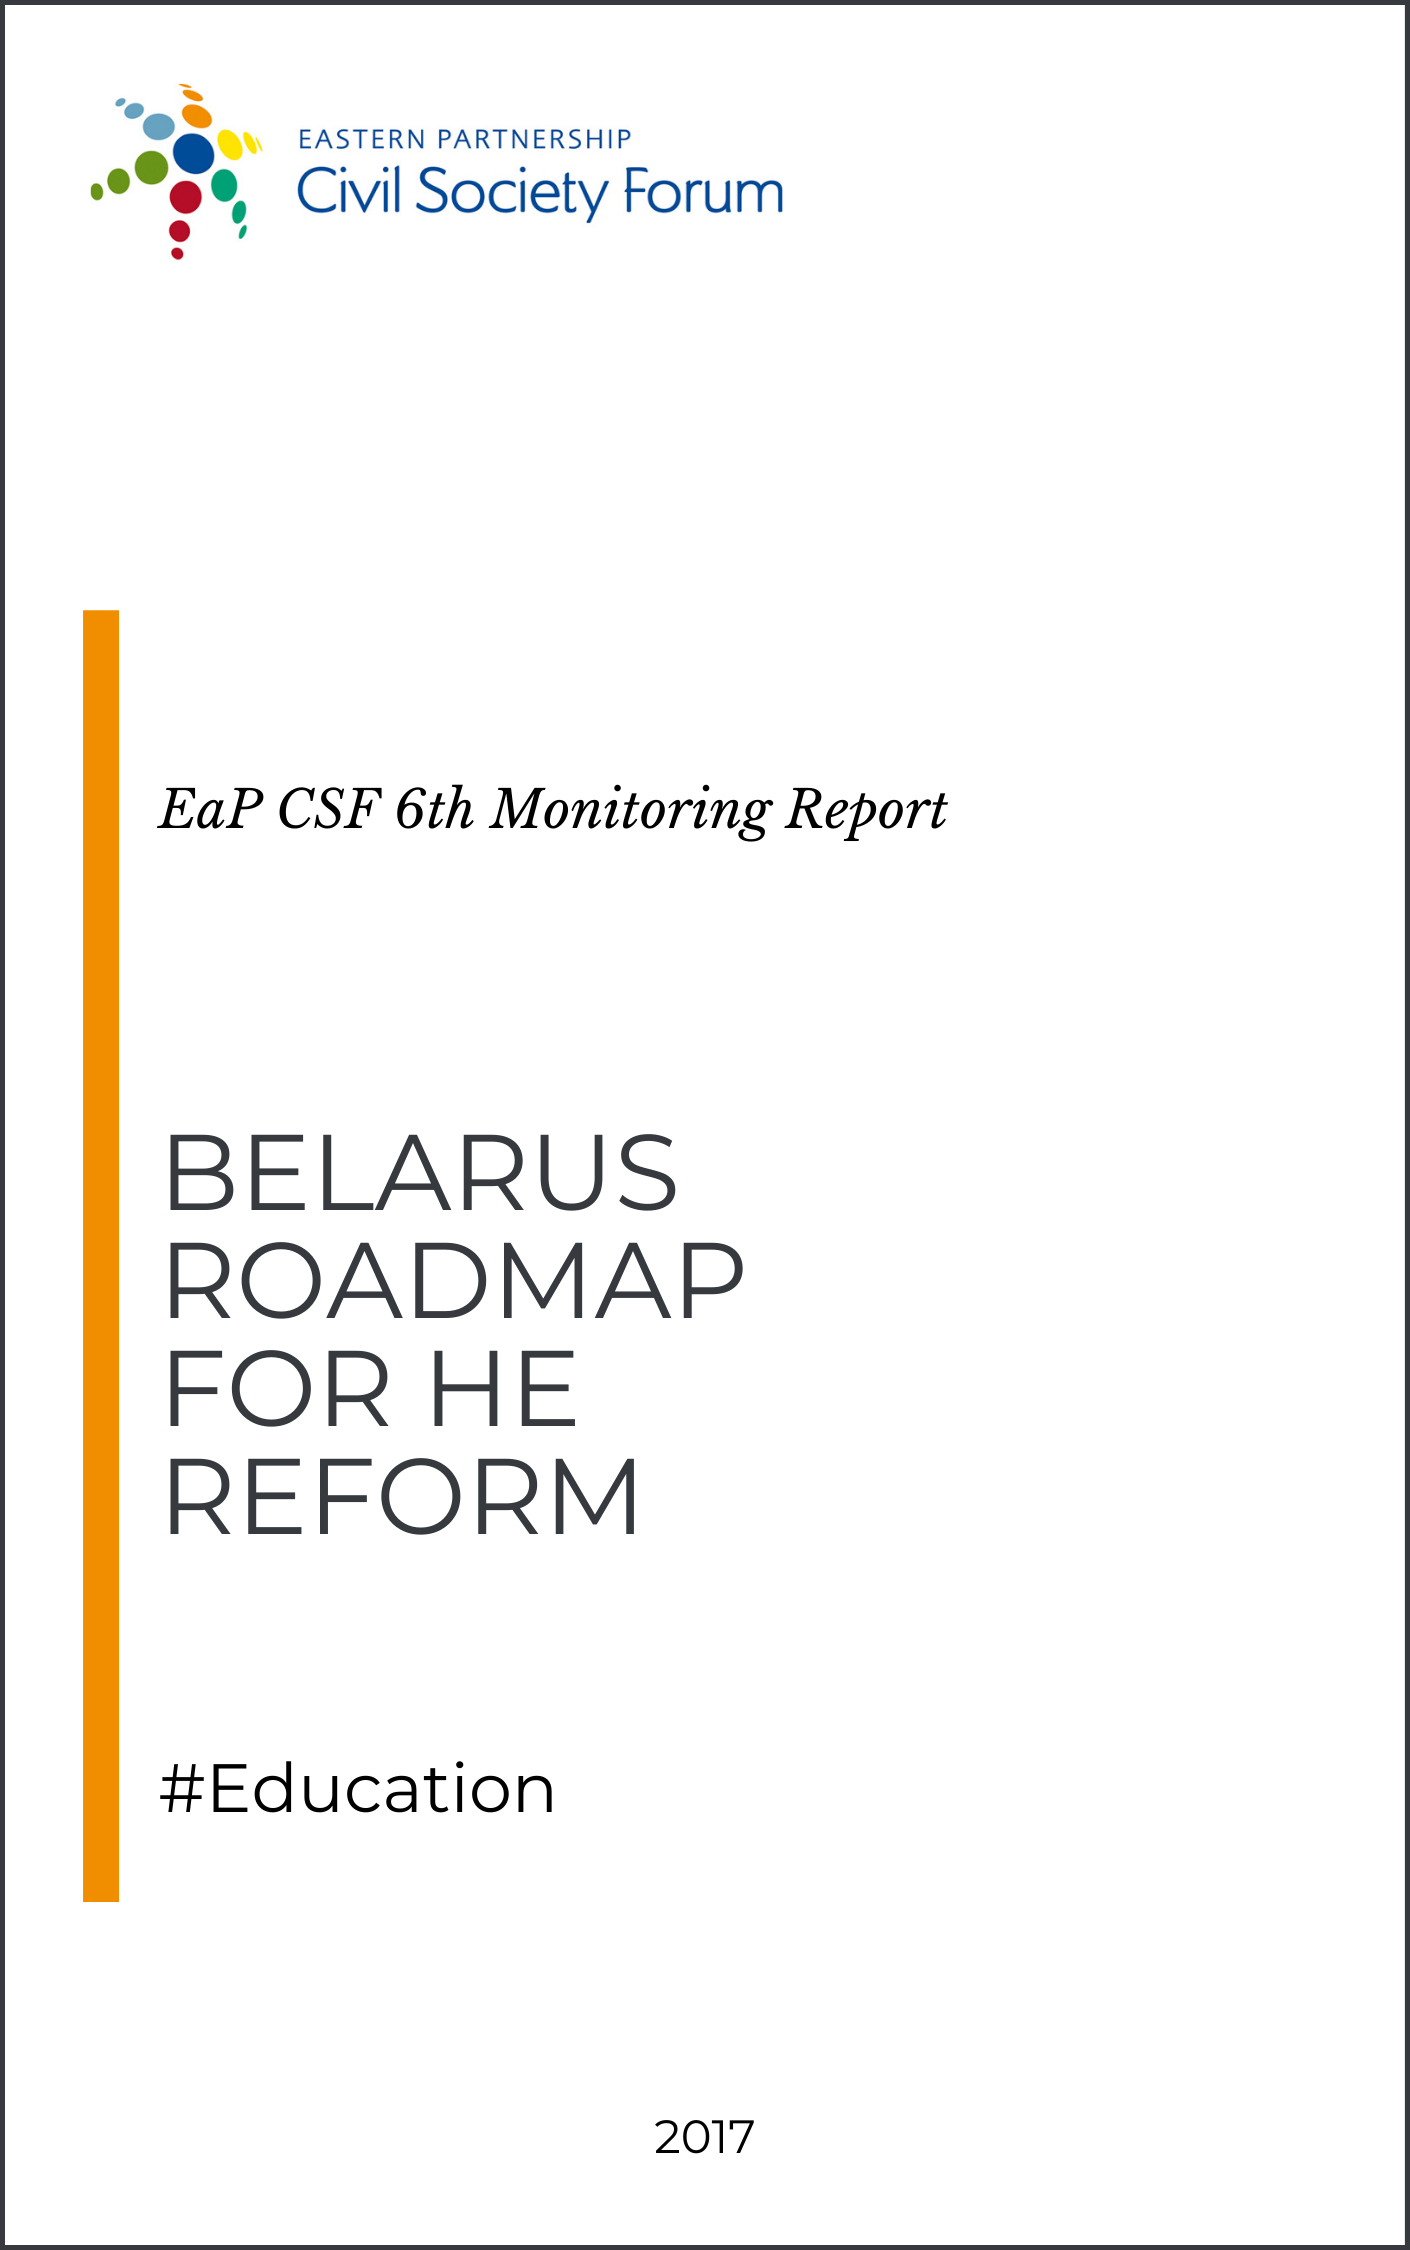 Belarus Roadmap for HE Reform (6th Monitoring Report)